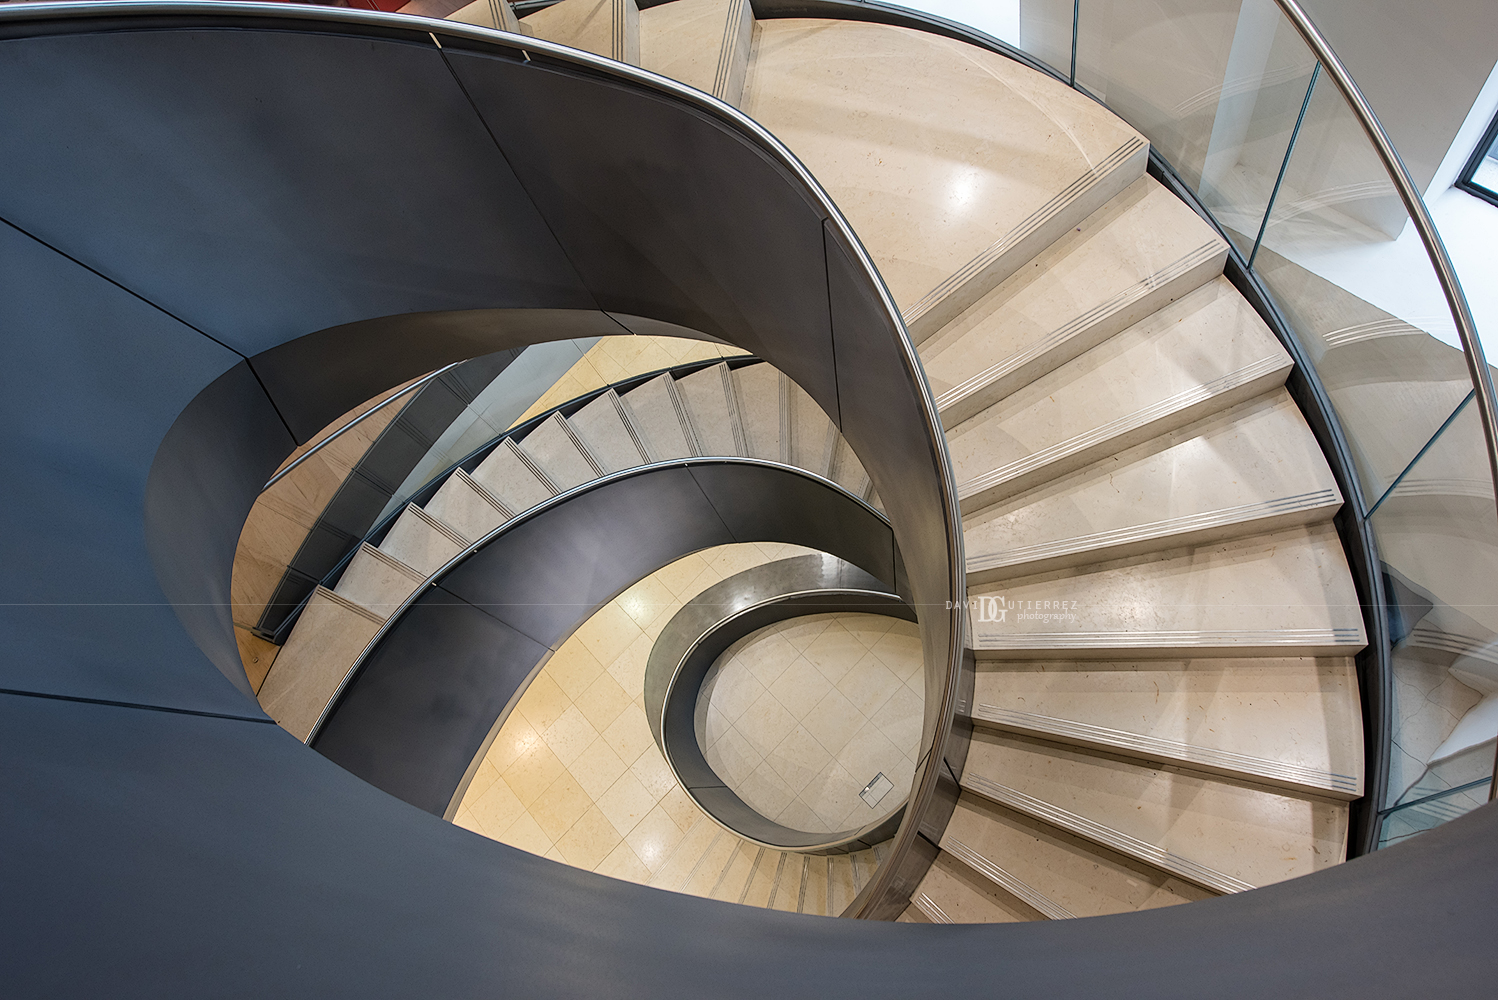 """Wellcome Collection's staircase"" London, UK by David Gutierrez Photography, London Photographer"